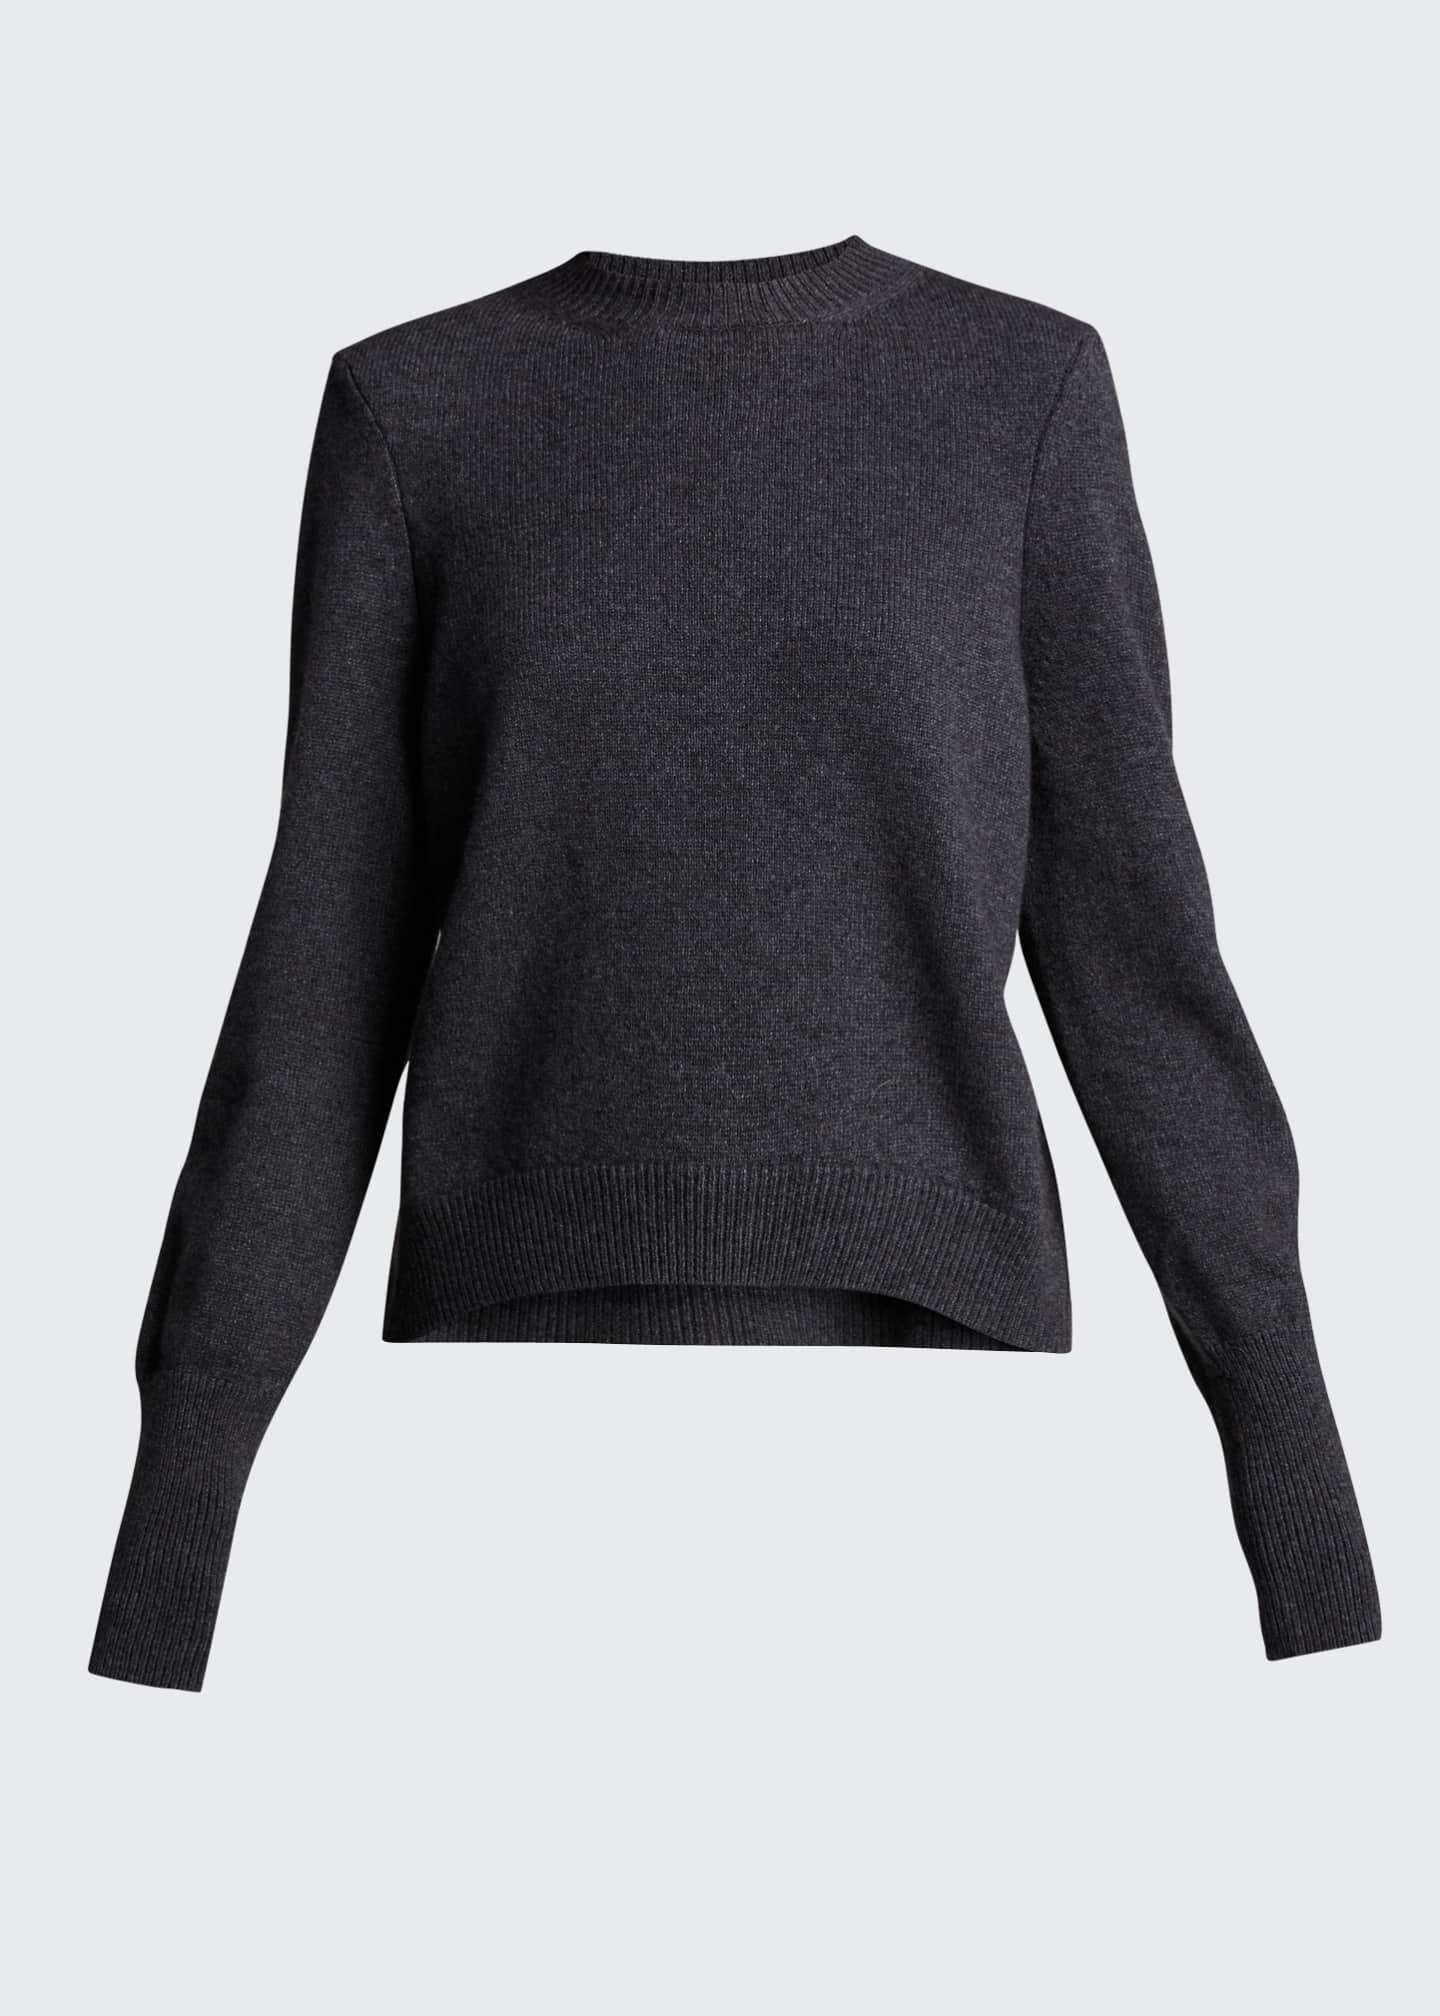 Image 5 of 5: Cashmere Slim-Fit Sweater